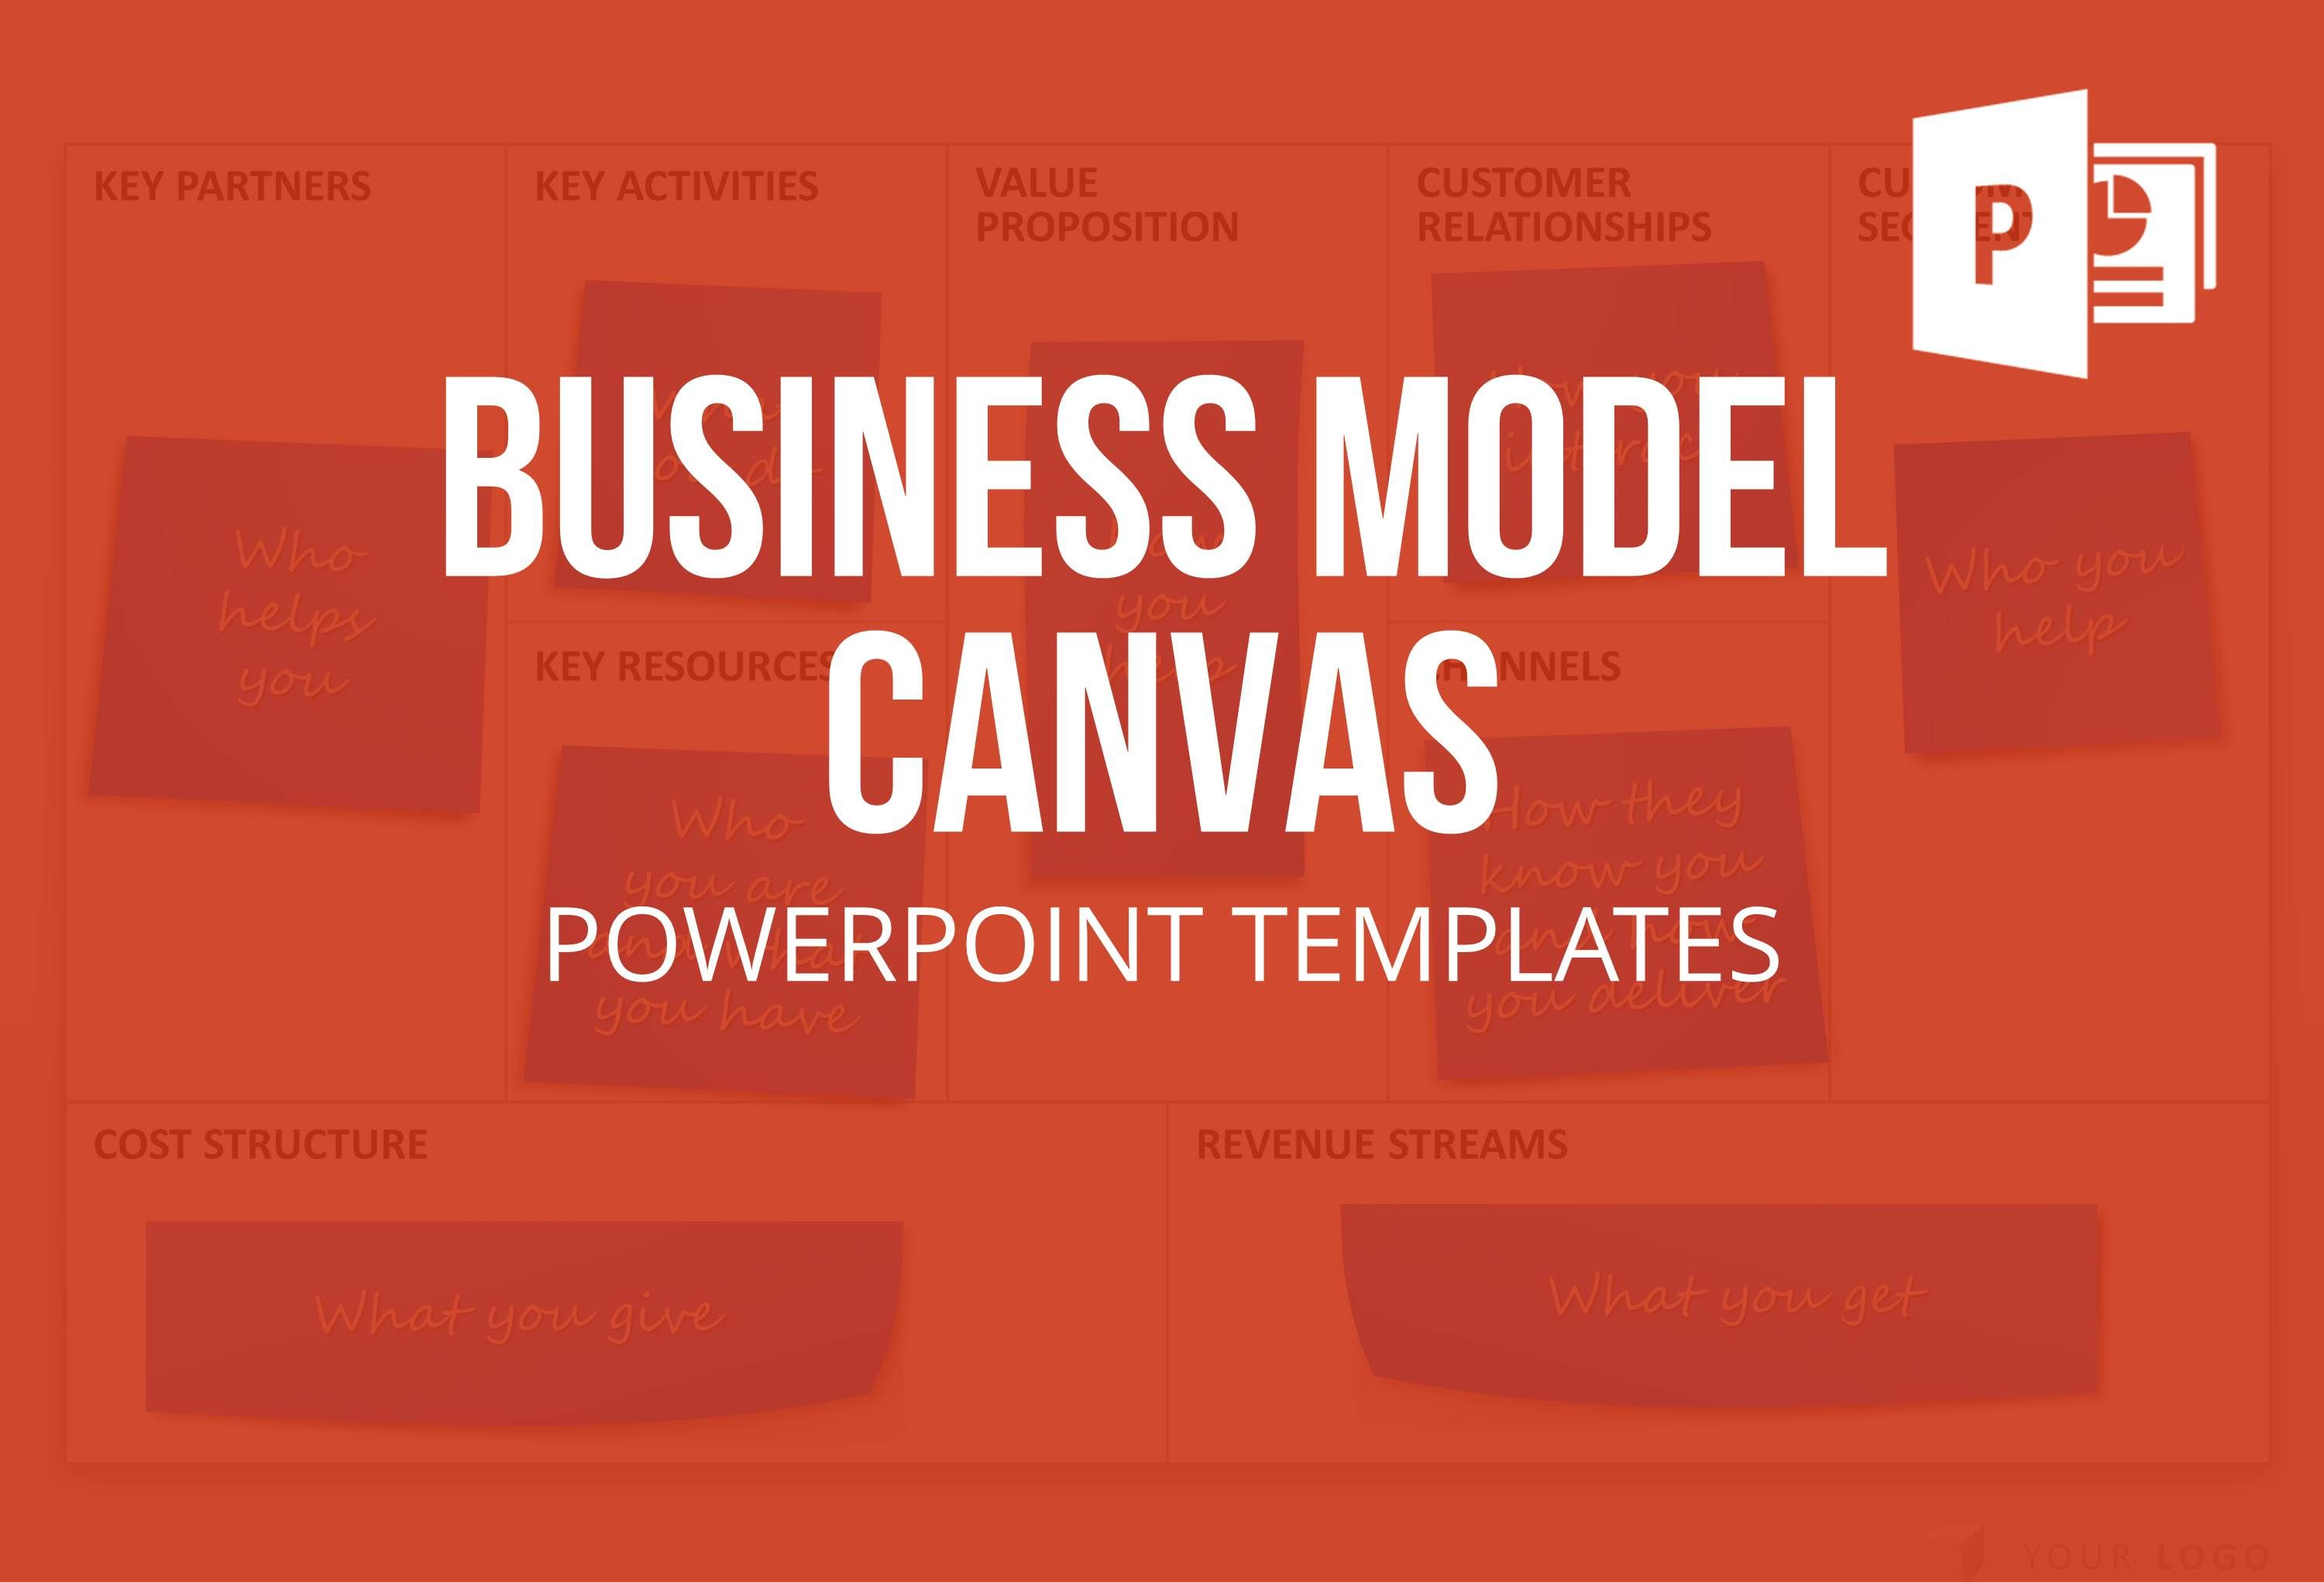 Pin by ramon garrido on templates pinterest business model business model canvas templates bmc for powerpoint for the planning and visualization of the flashek Images